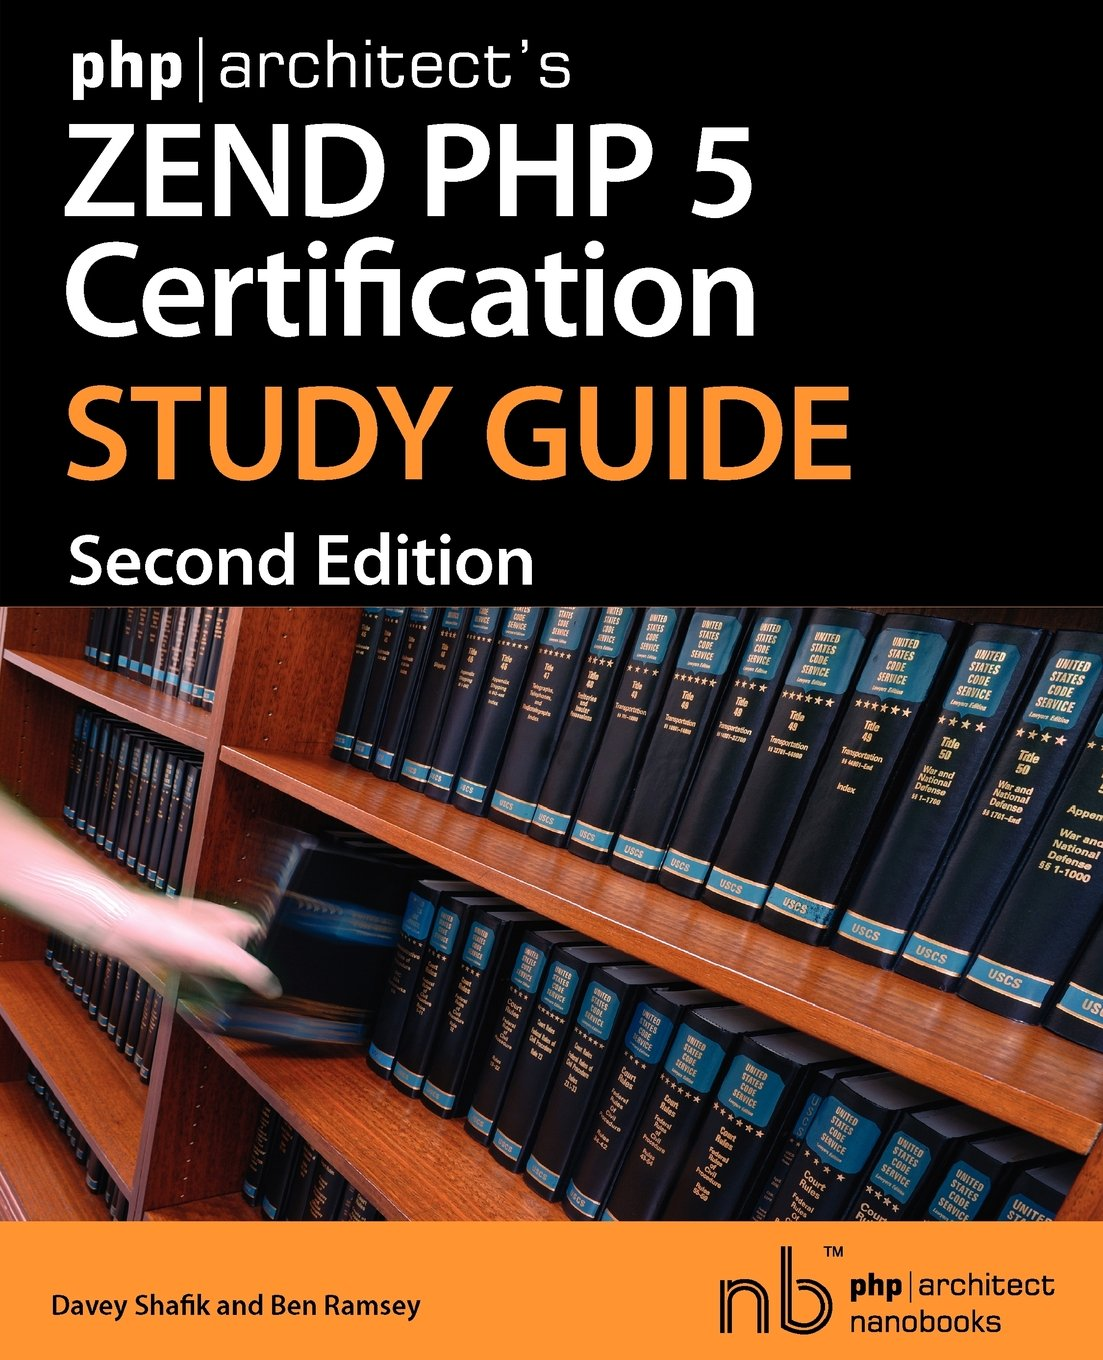 Phparchitects Zend Php 5 Certification Study Guide Amazon